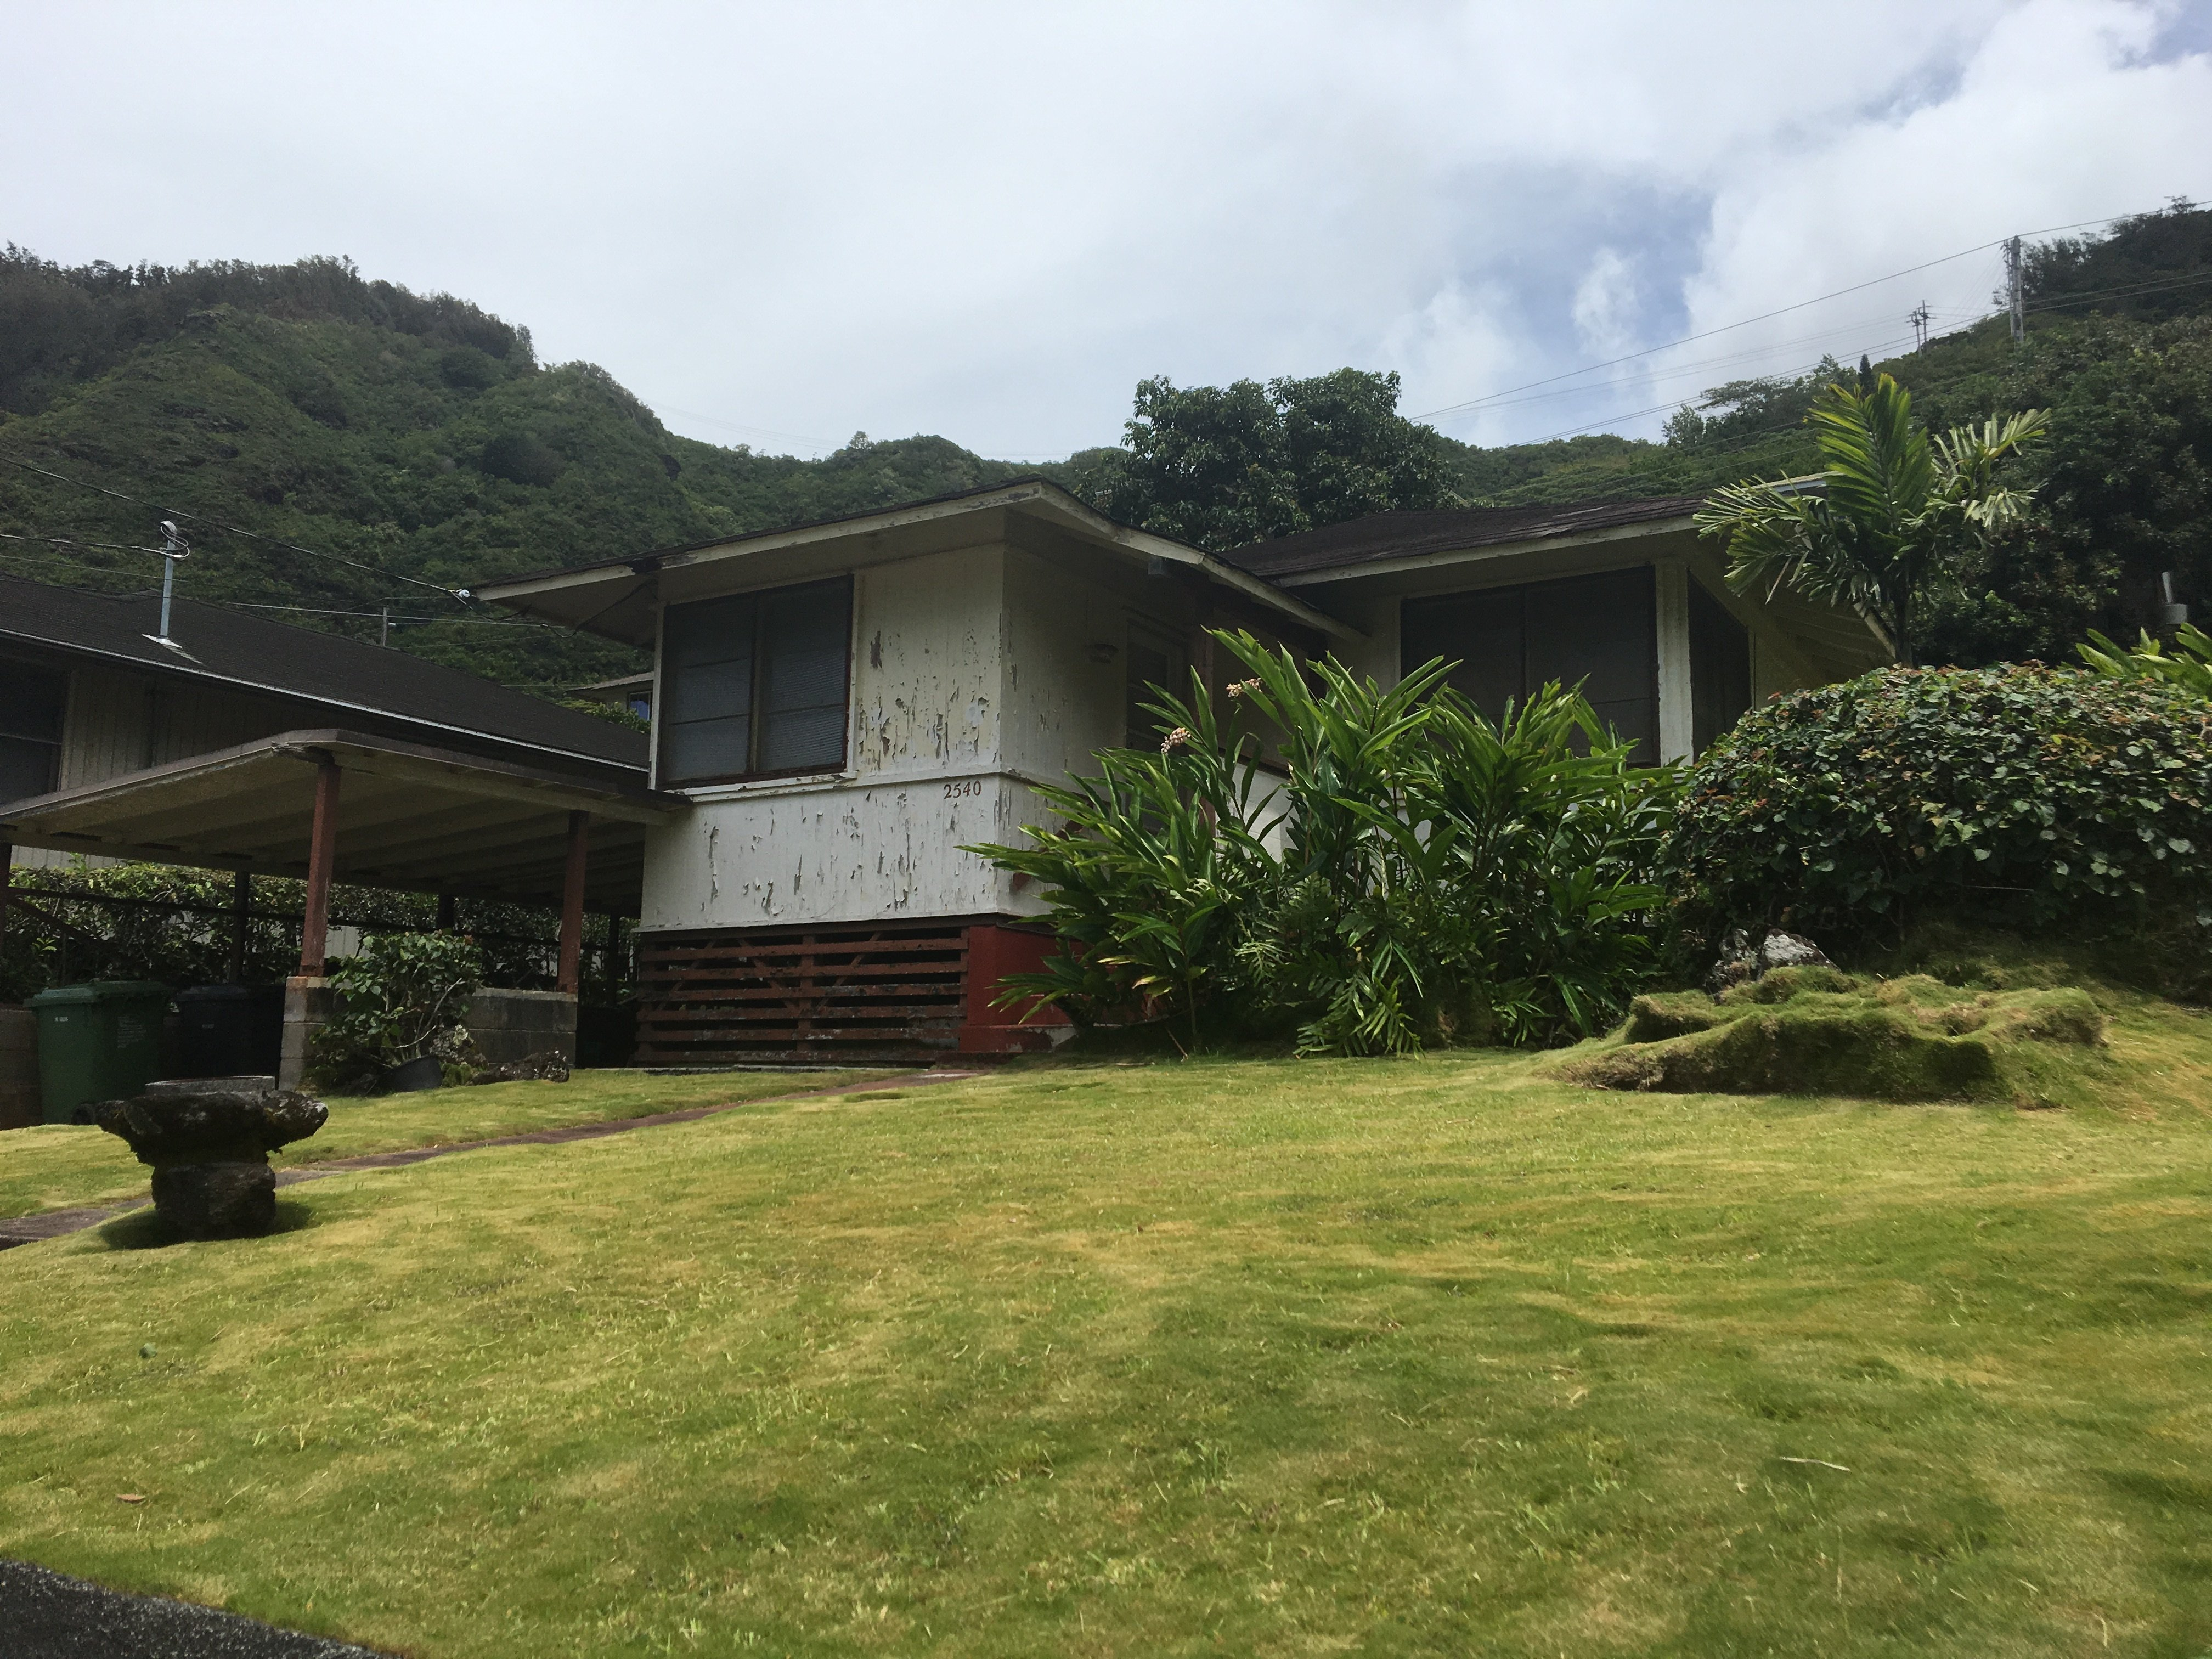 What are Houses like in Honolulu's Palolo Valley ... Old Hawaiian Plantation Homes on